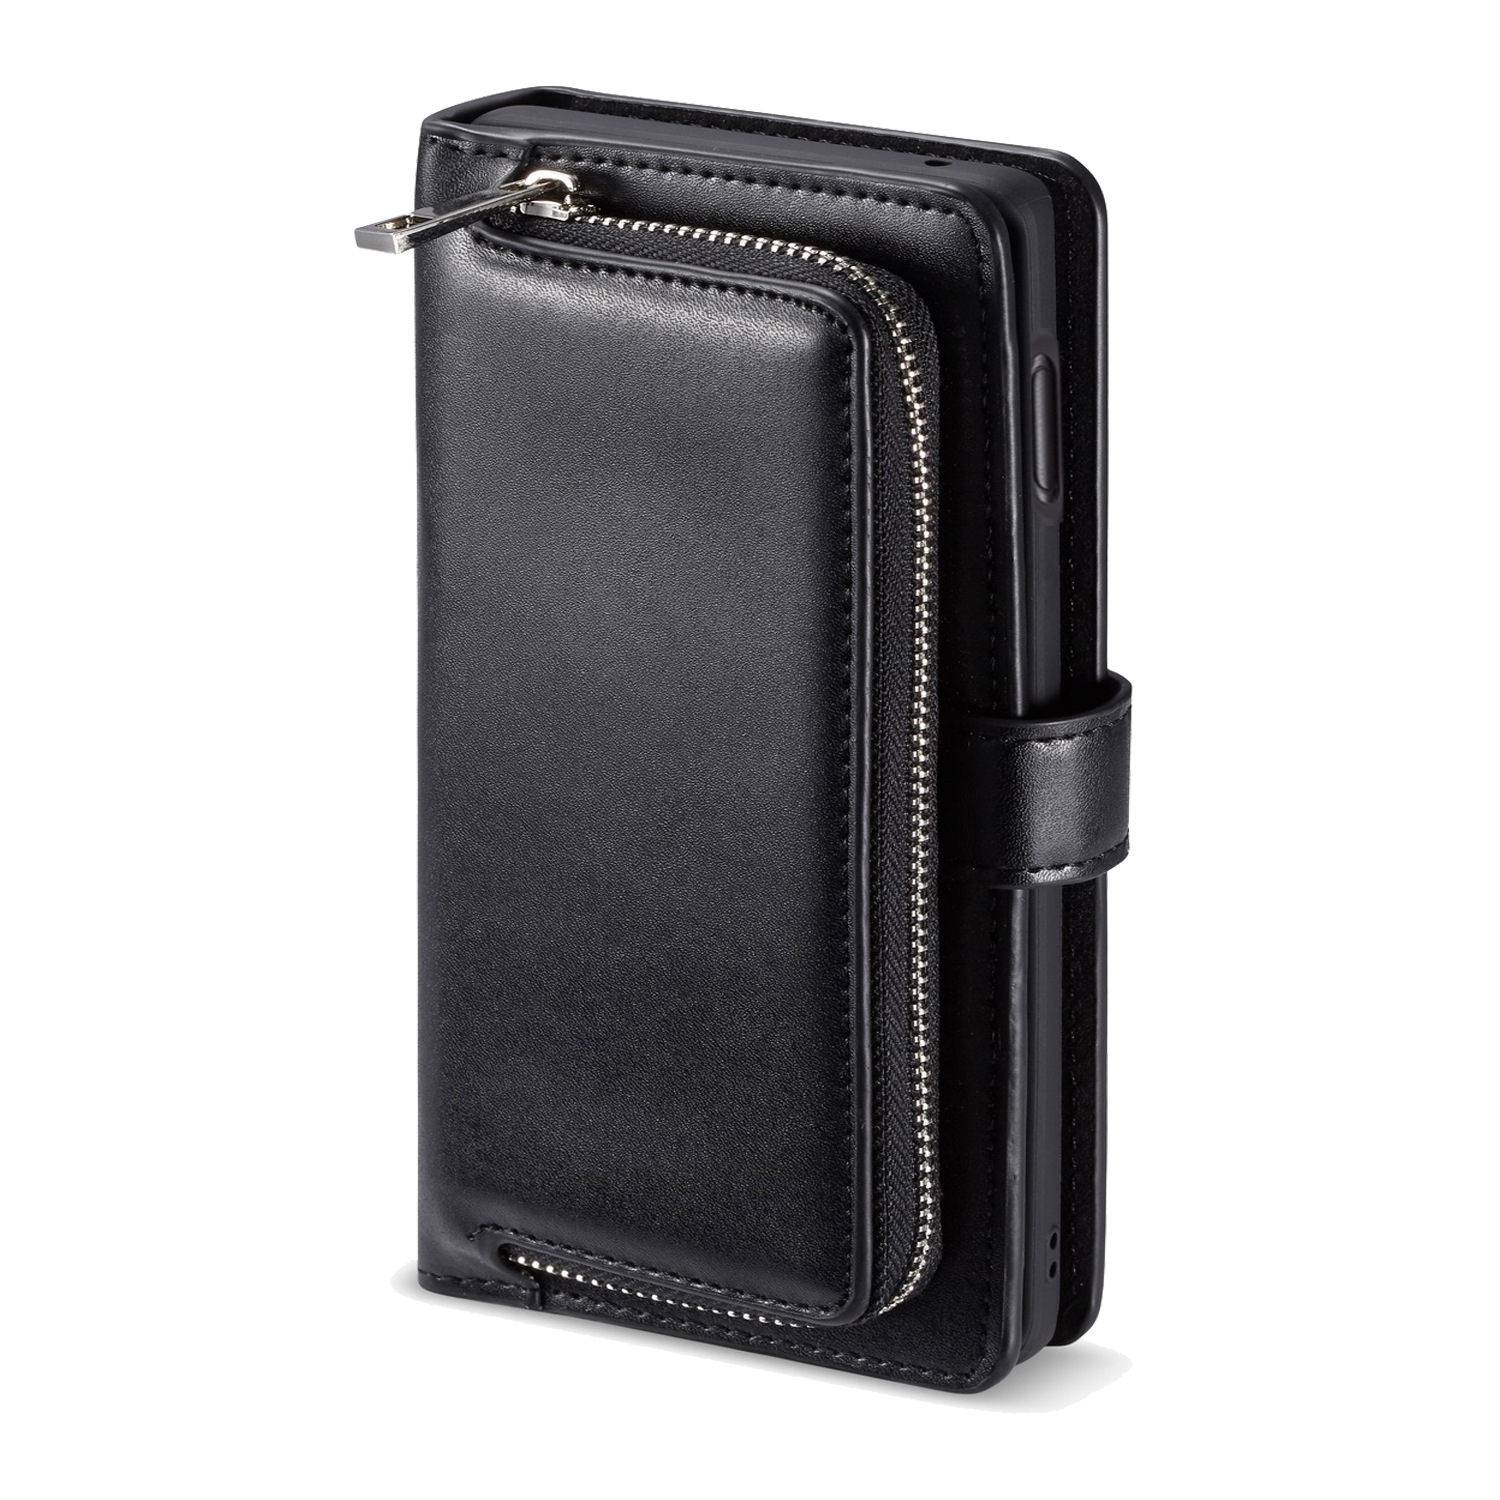 Luxury Leather Case For <font><b>Samsung</b></font> Galaxy S8 S9 <font><b>S10</b></font> Plus S7 Edge Wallet Case <font><b>Flip</b></font> Magnet Phone <font><b>Cover</b></font> with Zipper Pocket image